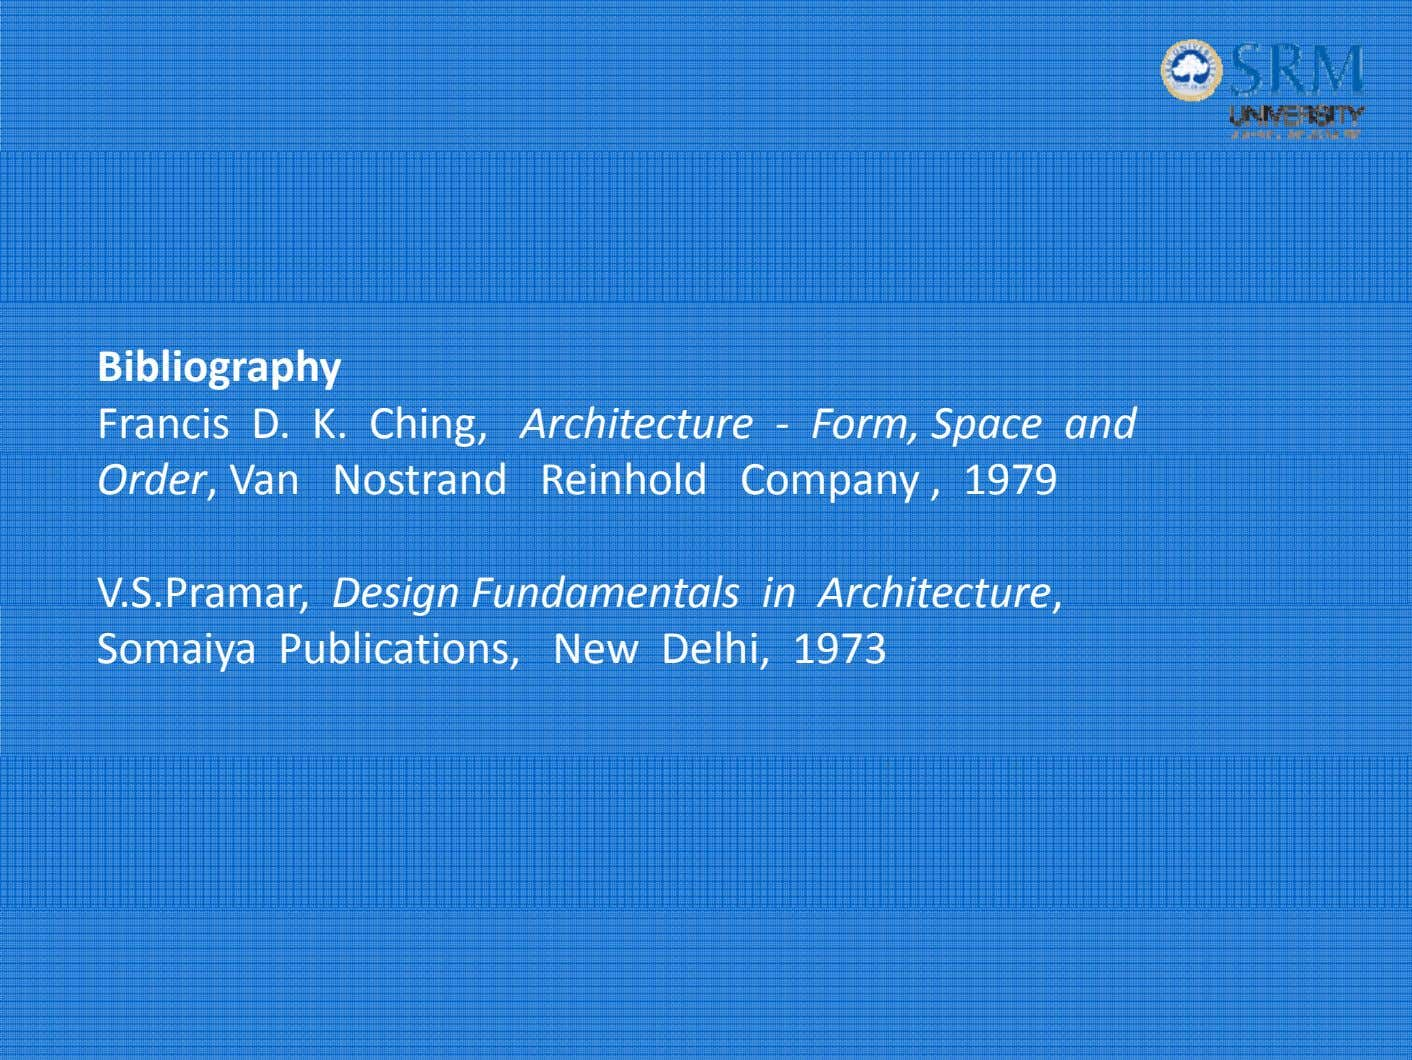 Bibliography Francis D. K. Ching, Architecture ‐ Form, Space and Order, Van Nostrand Reinhold Company